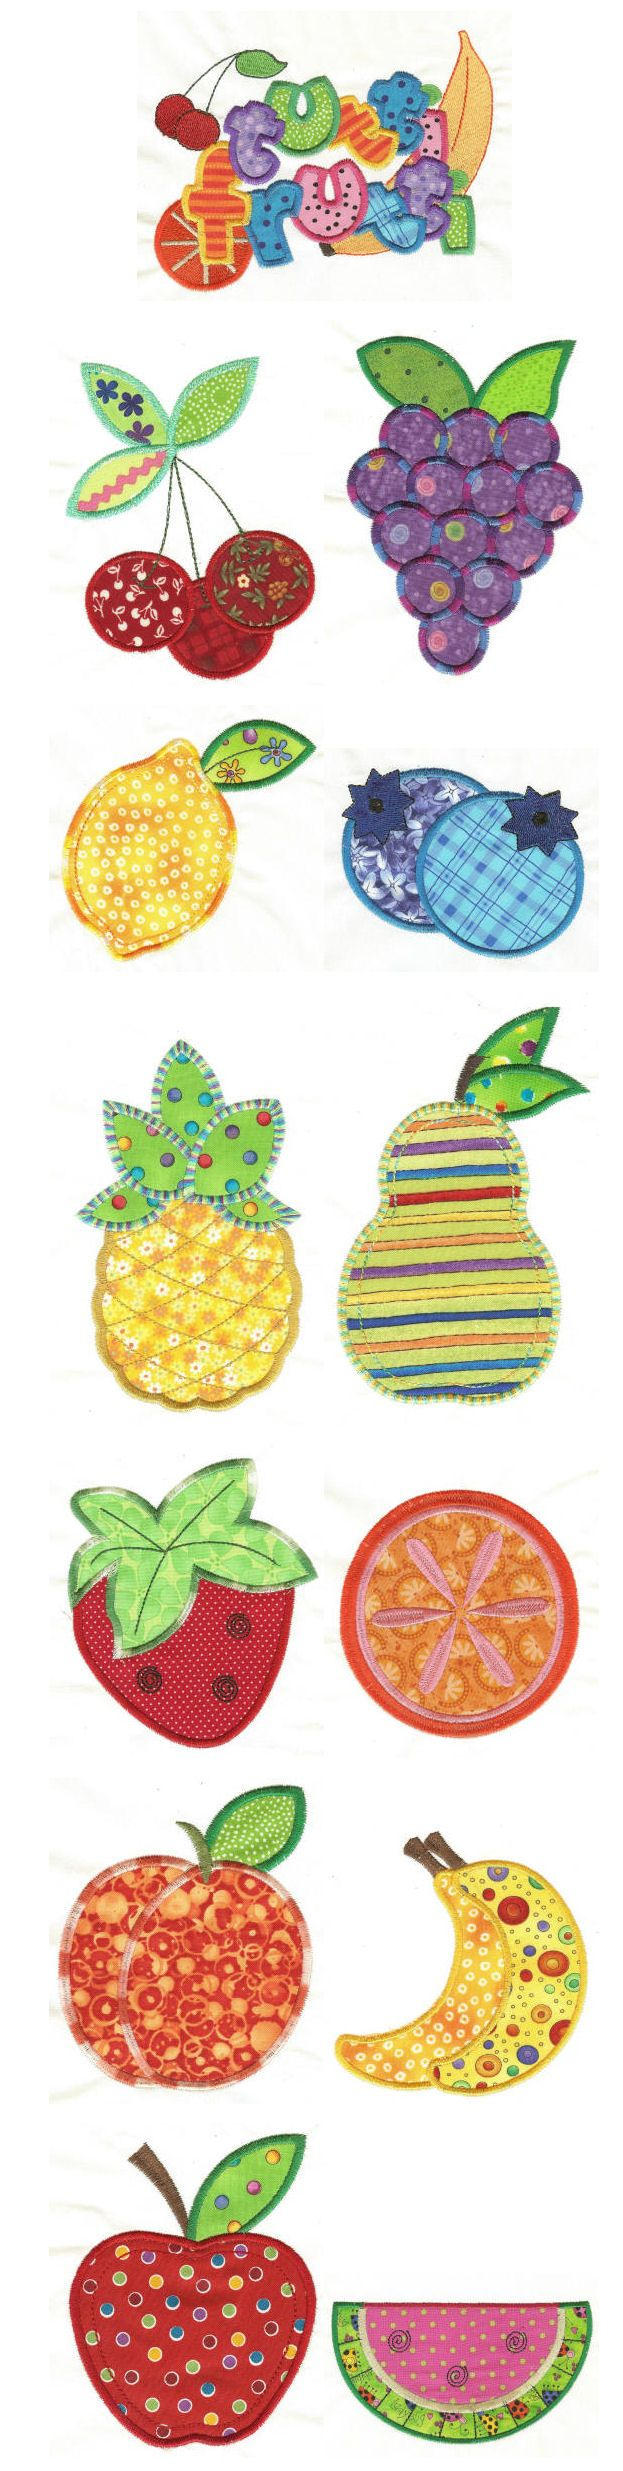 Embroidery | Free Machine Embroidery Designs | Tutti Frutti Applique